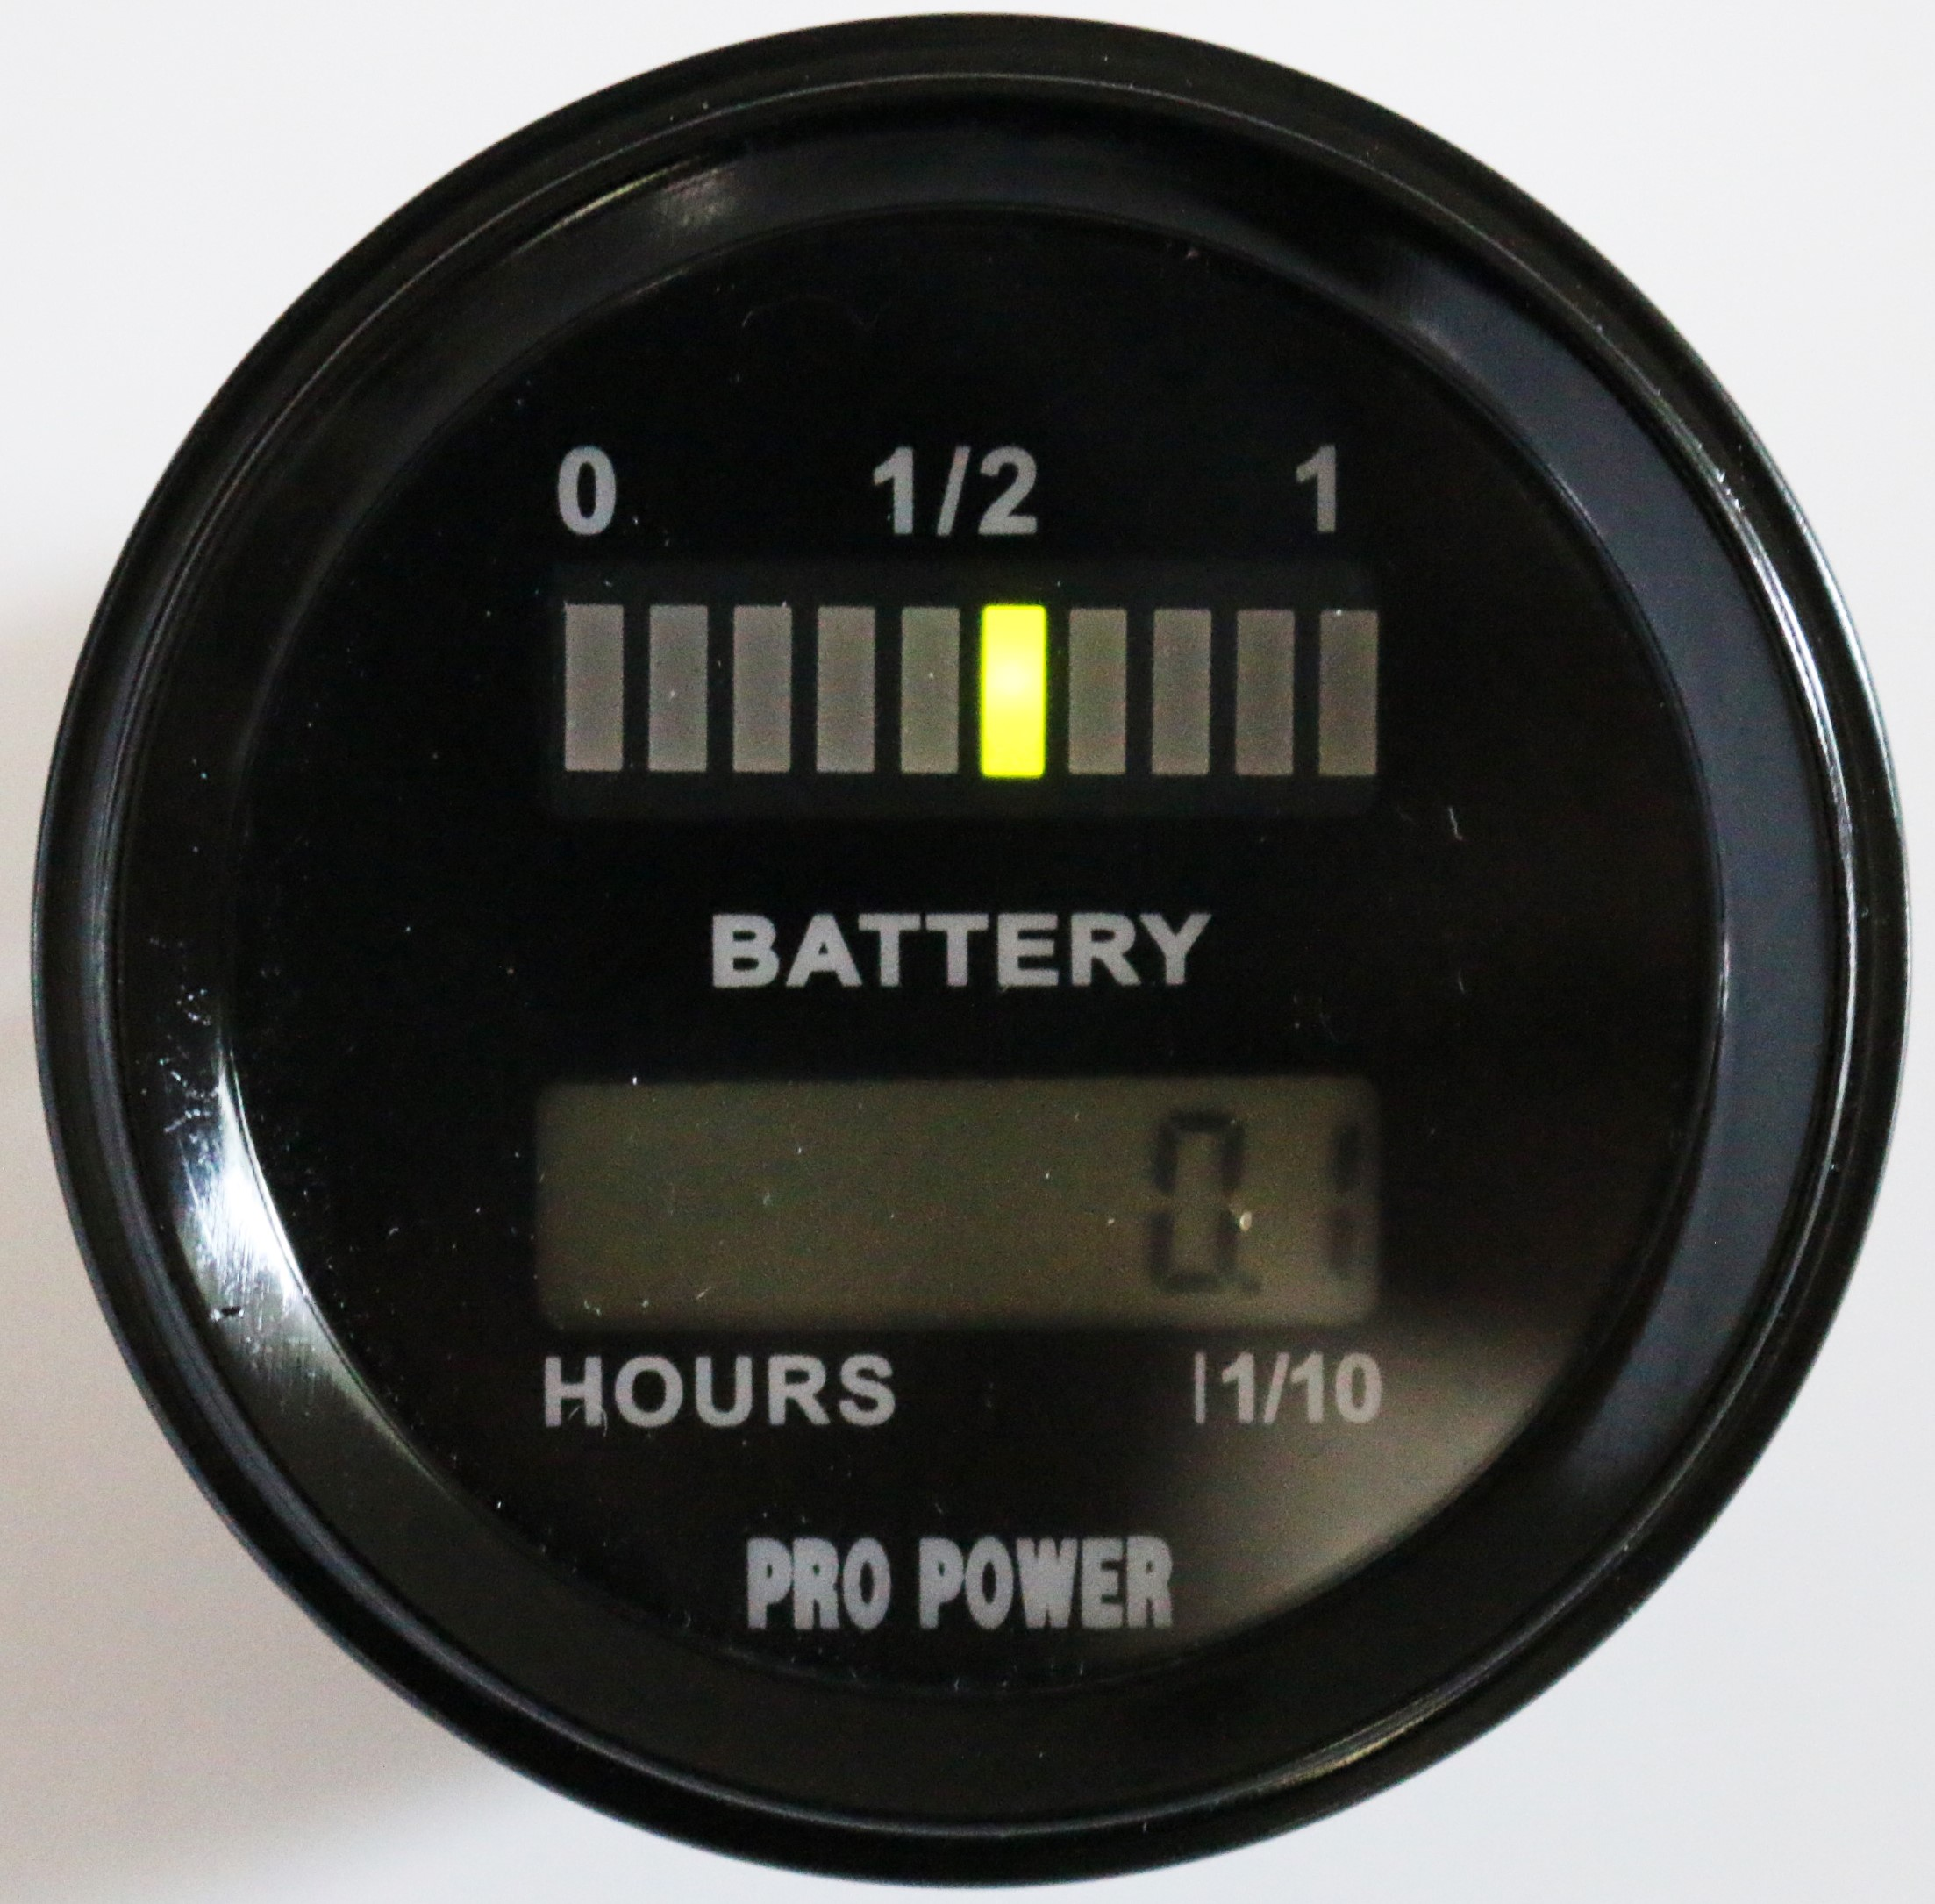 48V Battery Meter Wiring Diagram from static-cdn.imageservice.cloud